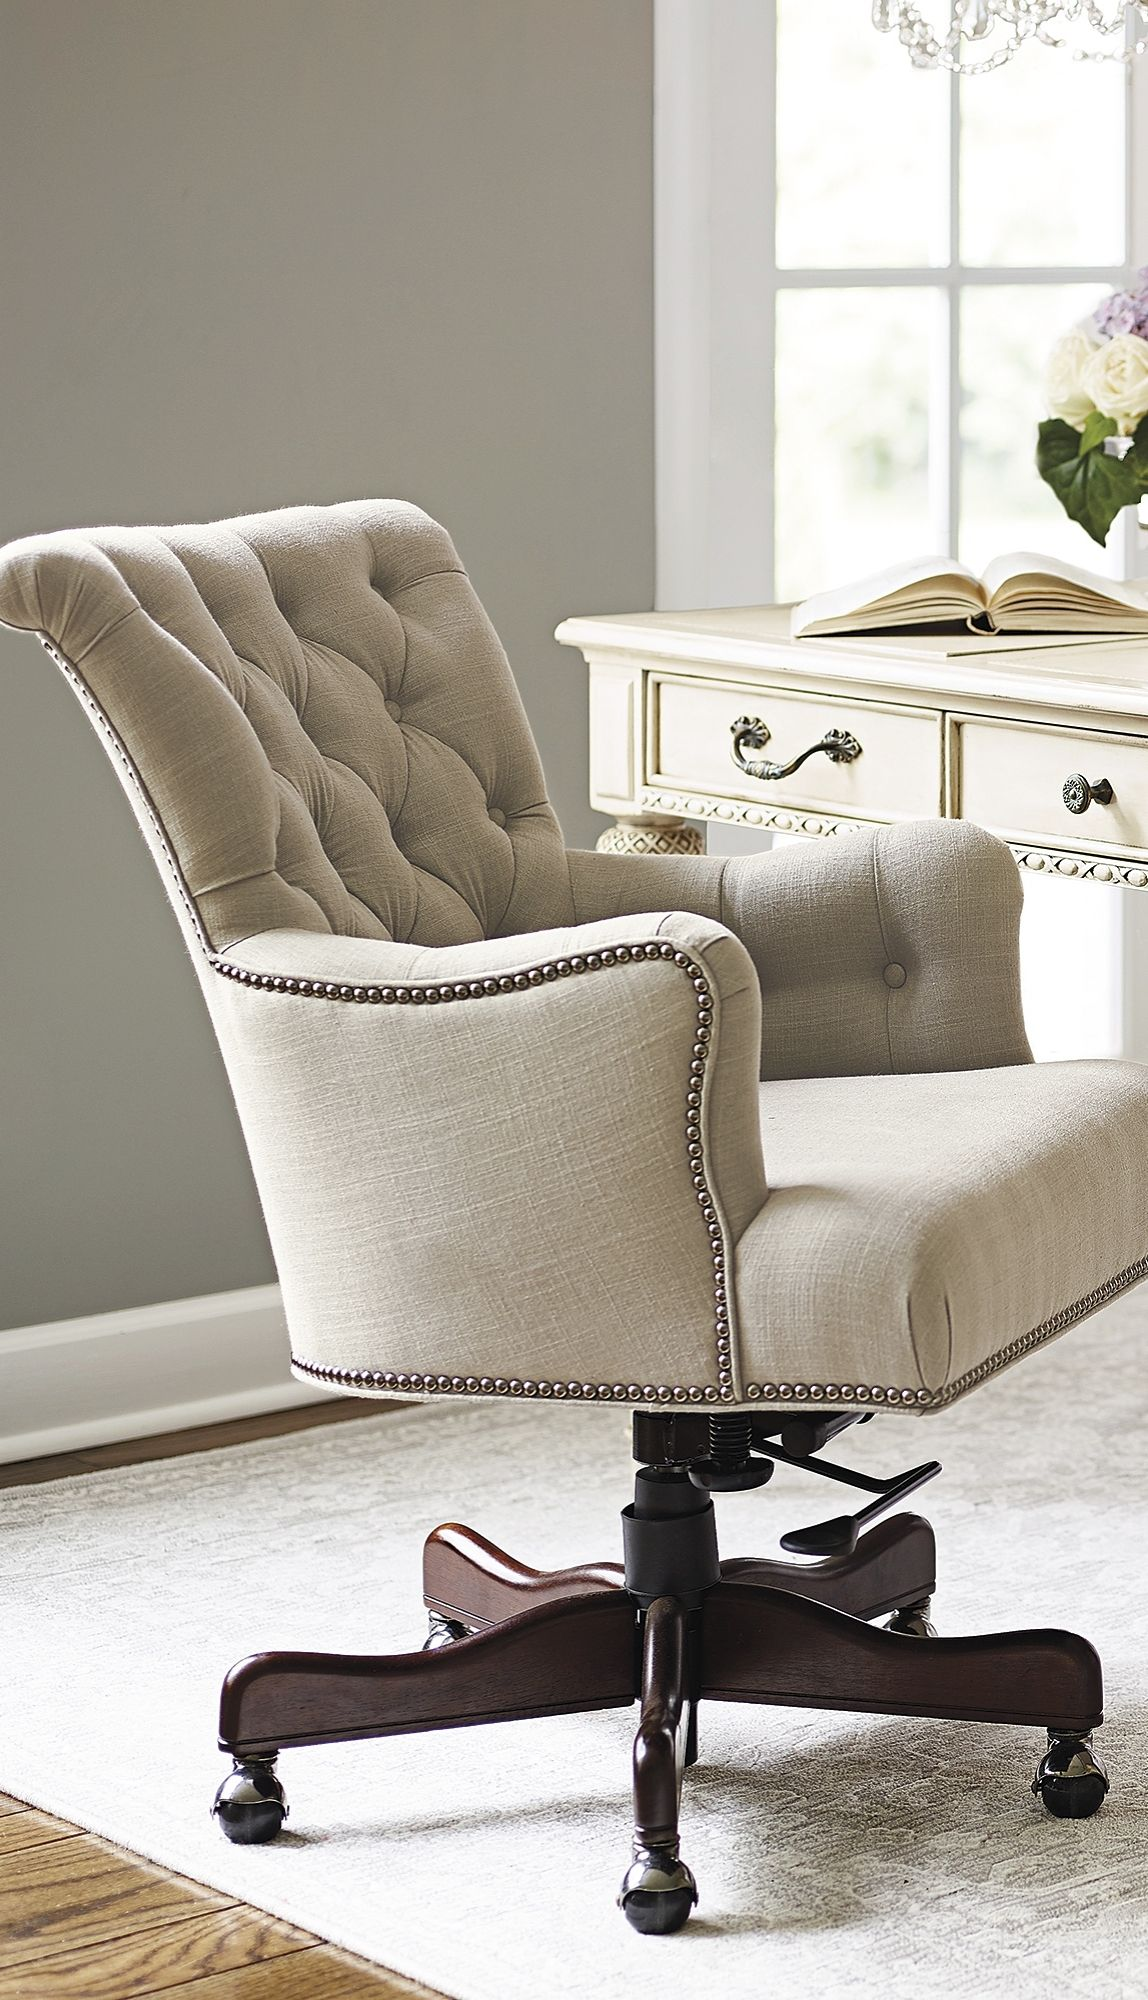 Beau Button Tufted Linen Accented With Silver Nailhead Trim Defines The Elegant  Averly Desk Chair.